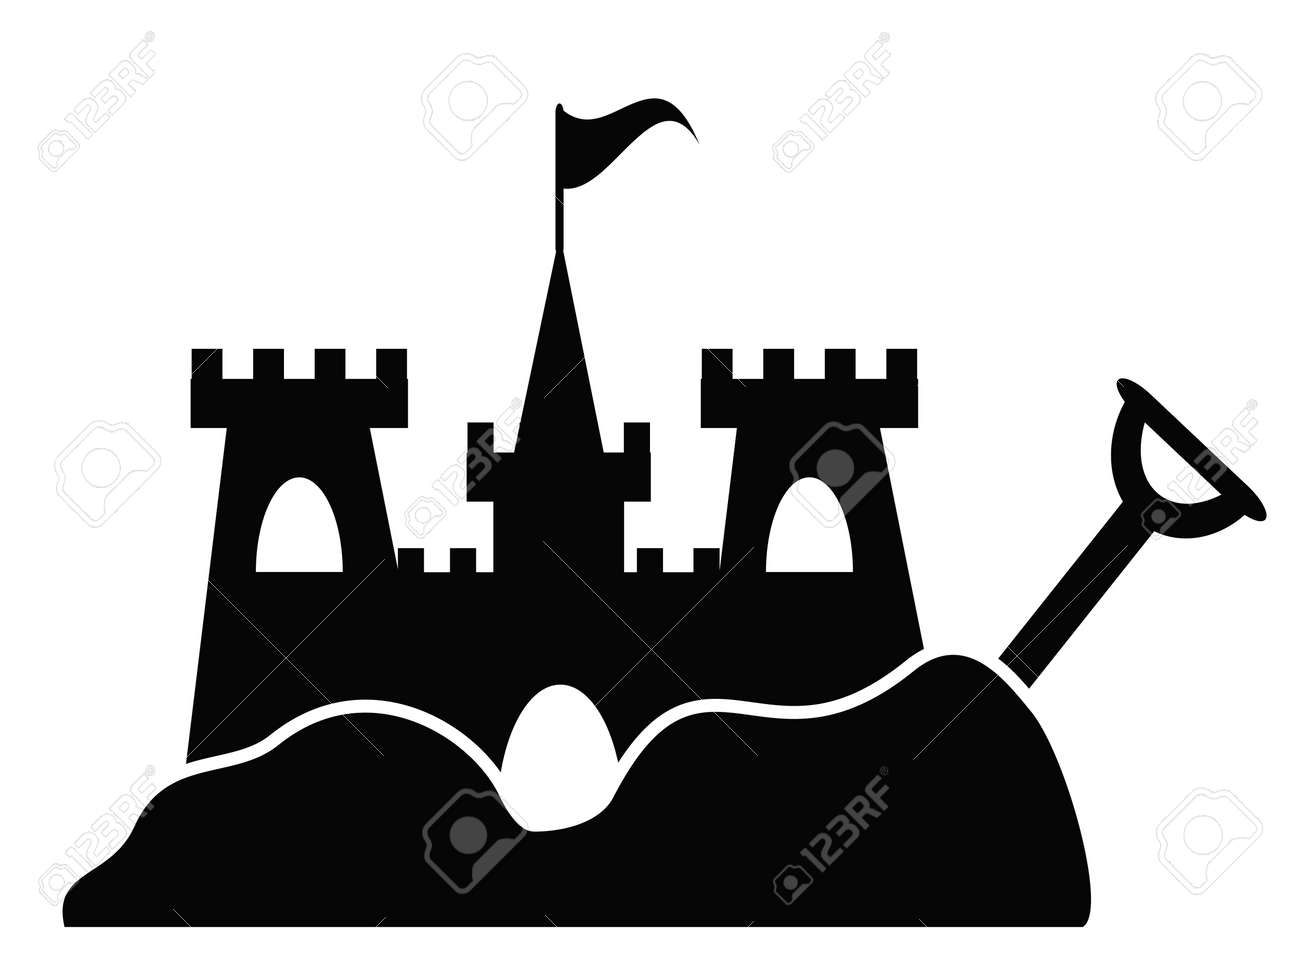 isolated simple sand castle icon from white background - 105685555